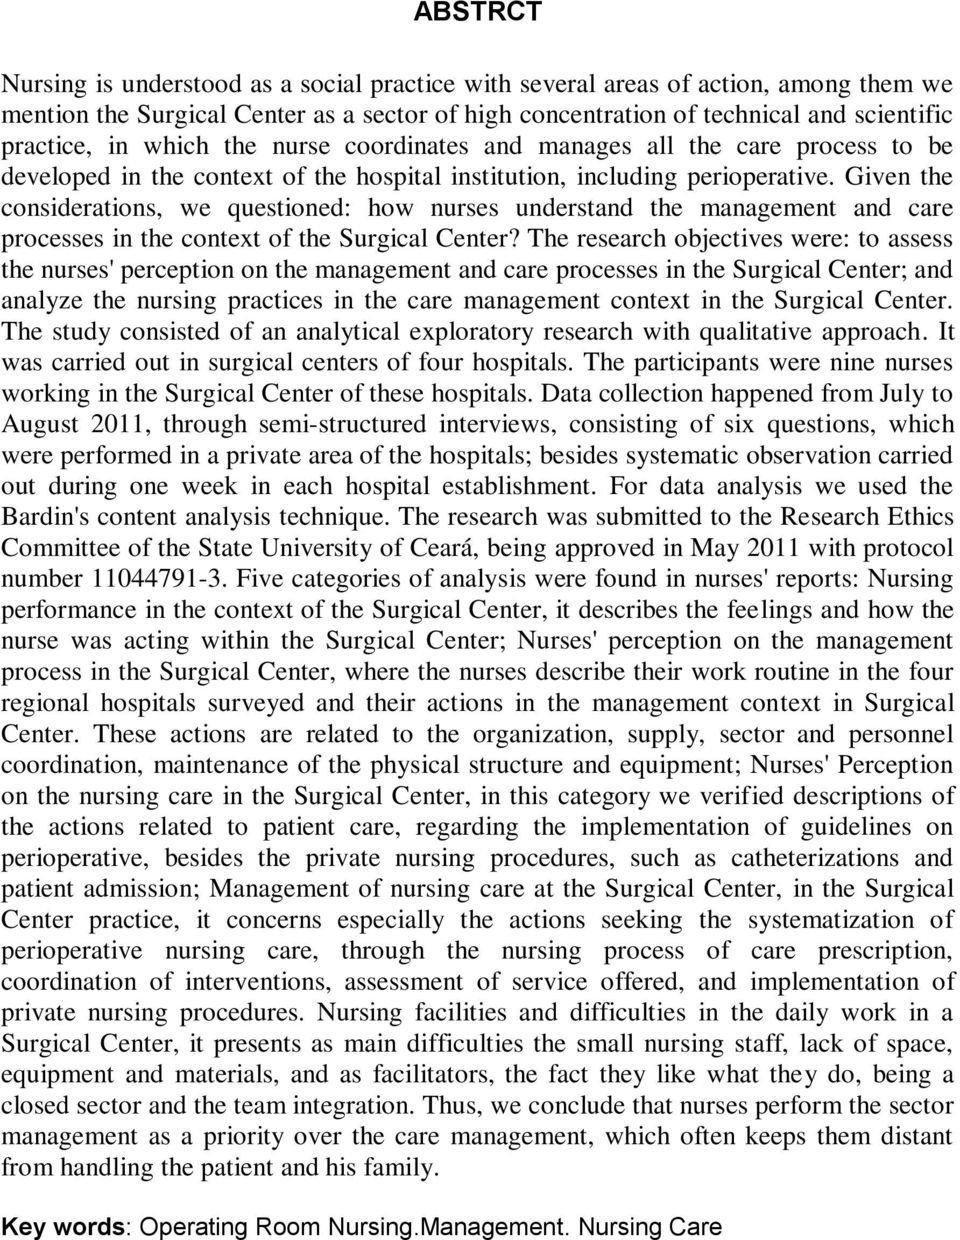 Given the considerations, we questioned: how nurses understand the management and care processes in the context of the Surgical Center?